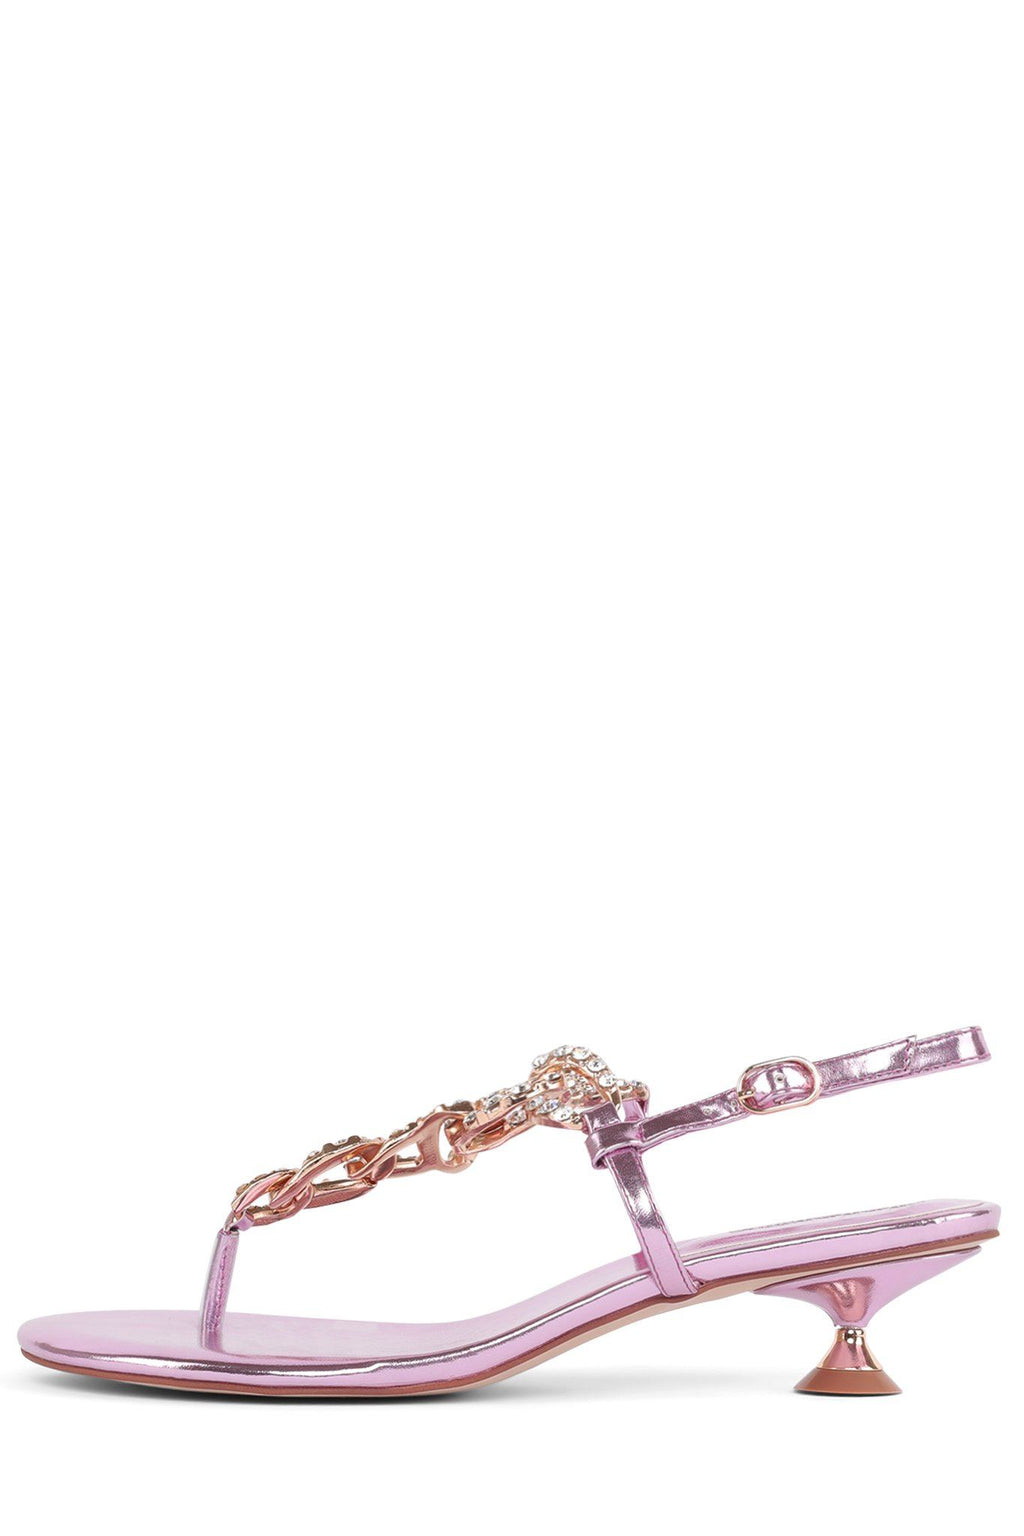 CHAIN-HI Heeled Sandal STRATEGY Pink Metallic 6